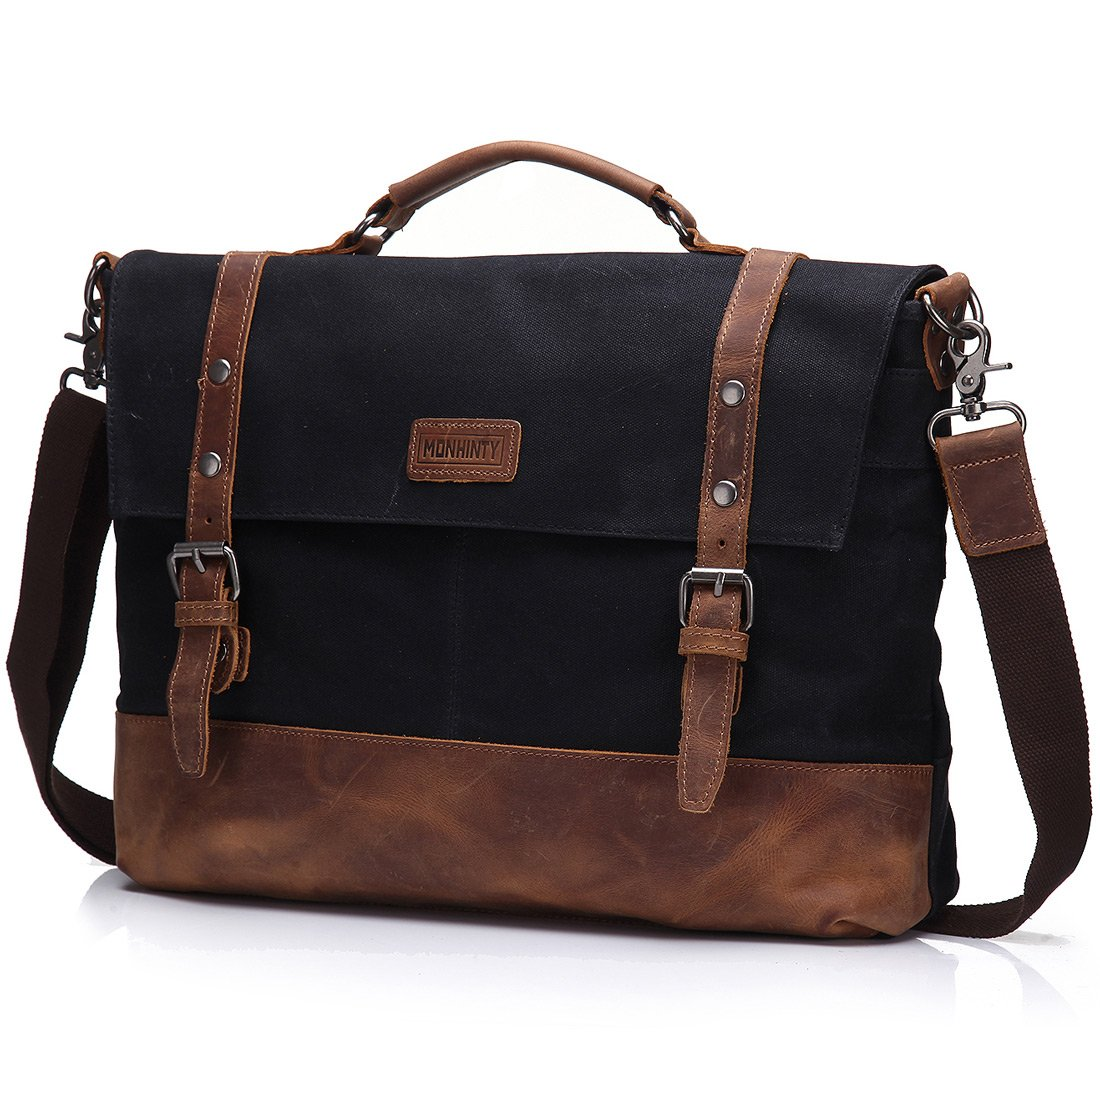 Waxed Canvas 15.6 Inch Laptop Messenger Bag for Men, Vintage Leather Business Briefcase Tote Shoulder Satchel Bags with Removable Strap Water Resistant Black